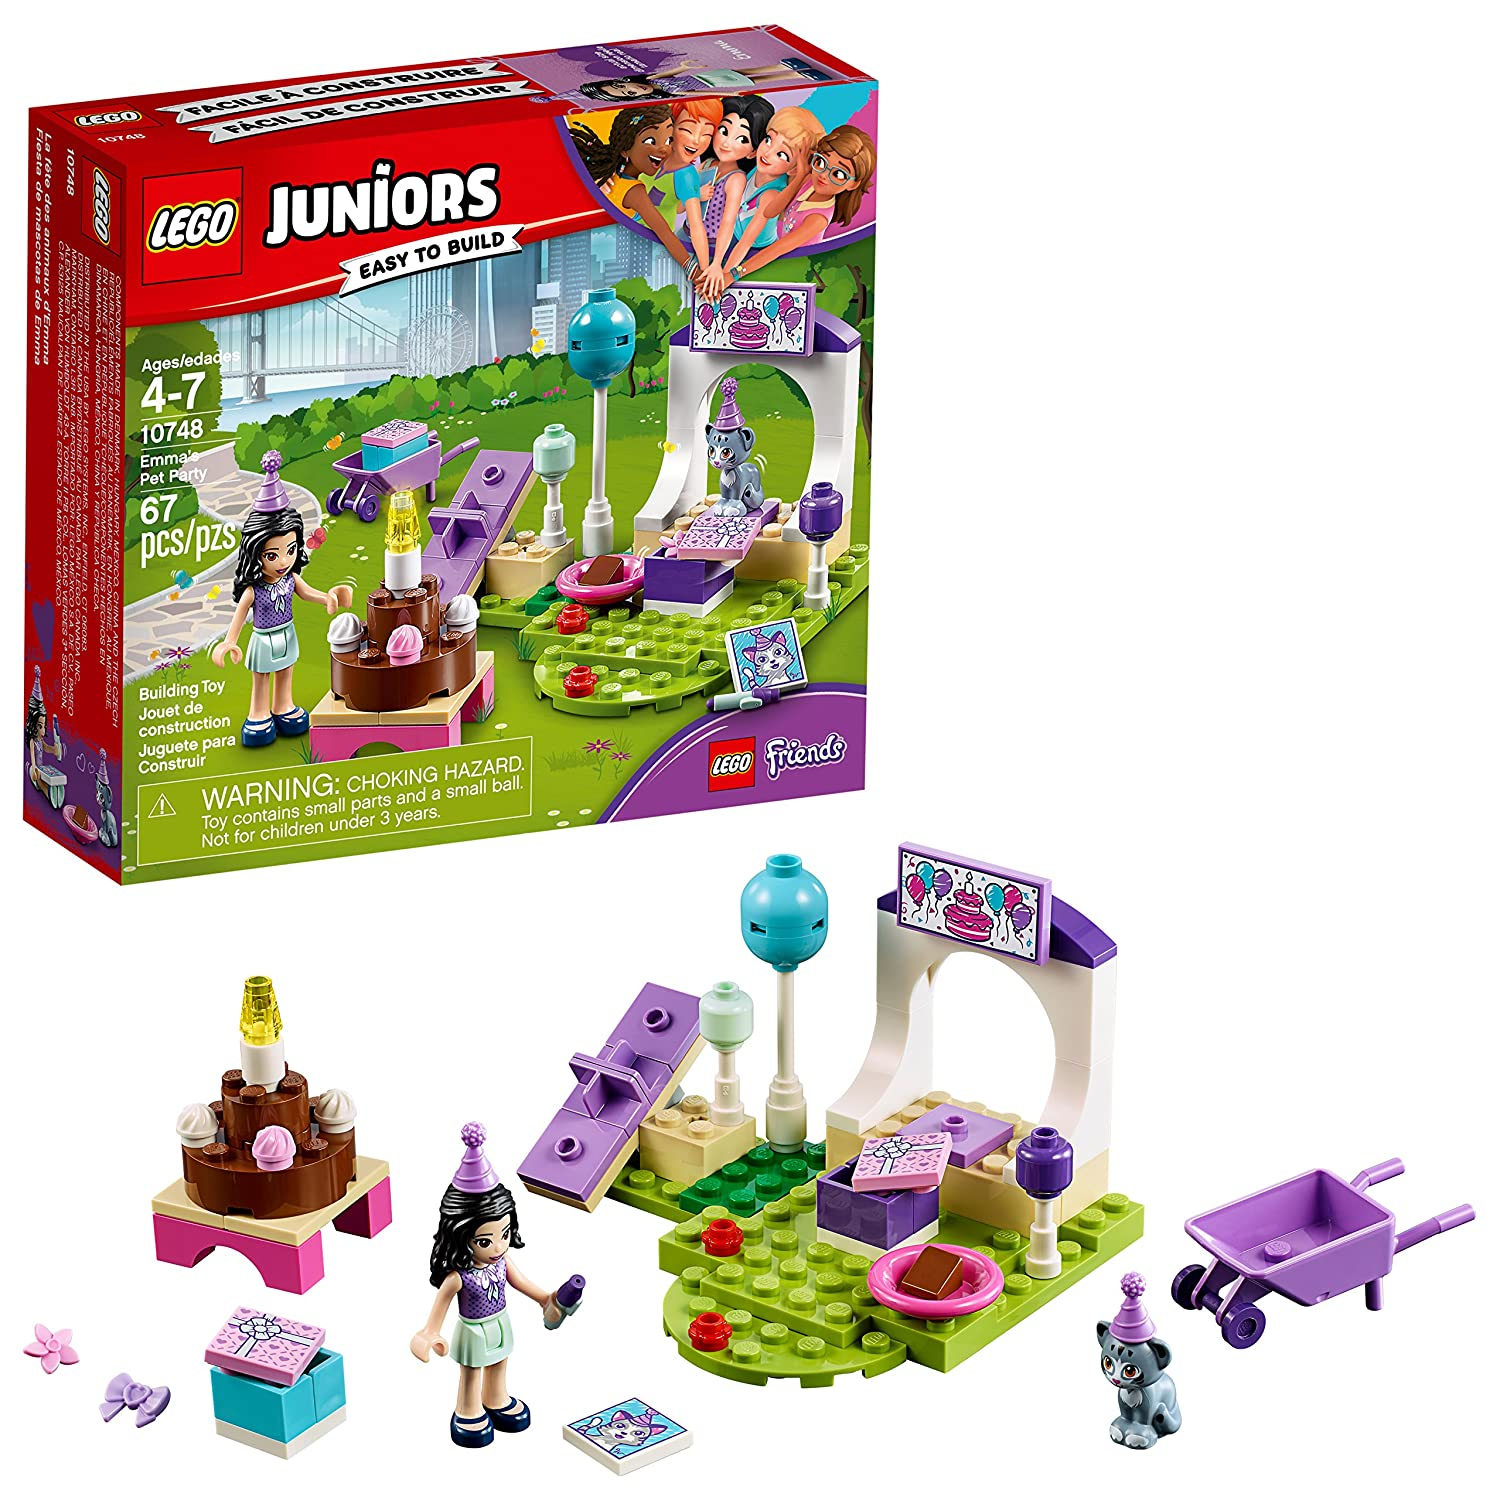 LEGO Juniors 6210206 Emma's Pet Party 10748 Building Kit (67 Piece)